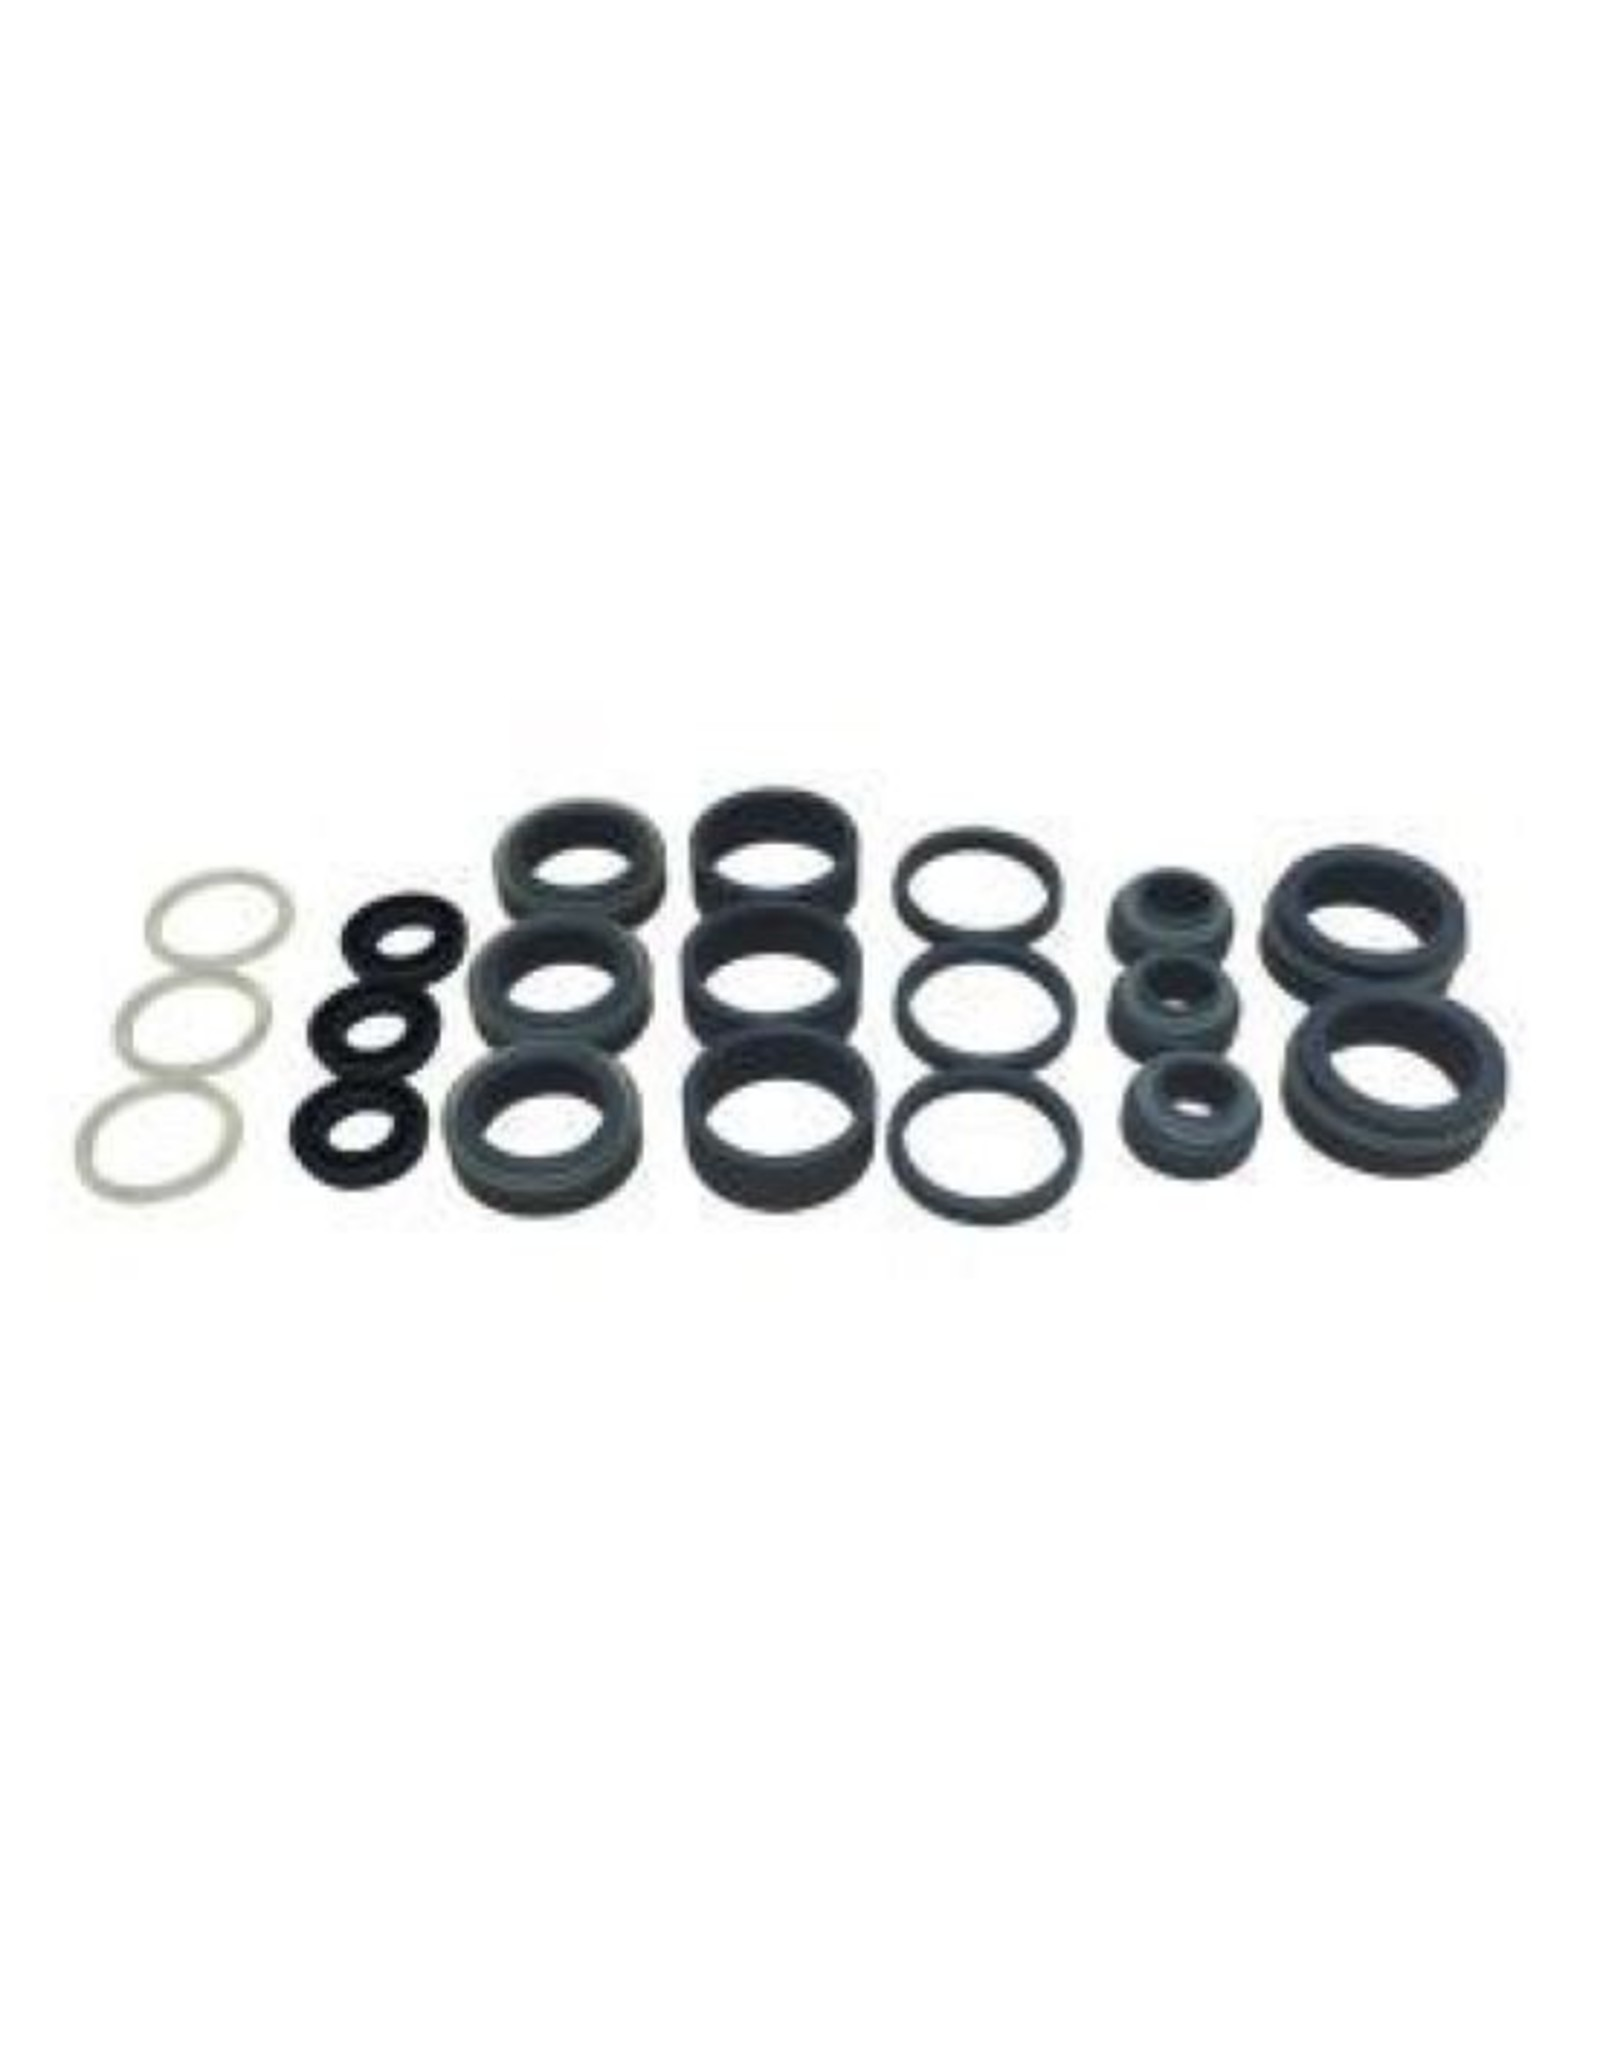 OMAX Style Pump Rebuild Seal Kit